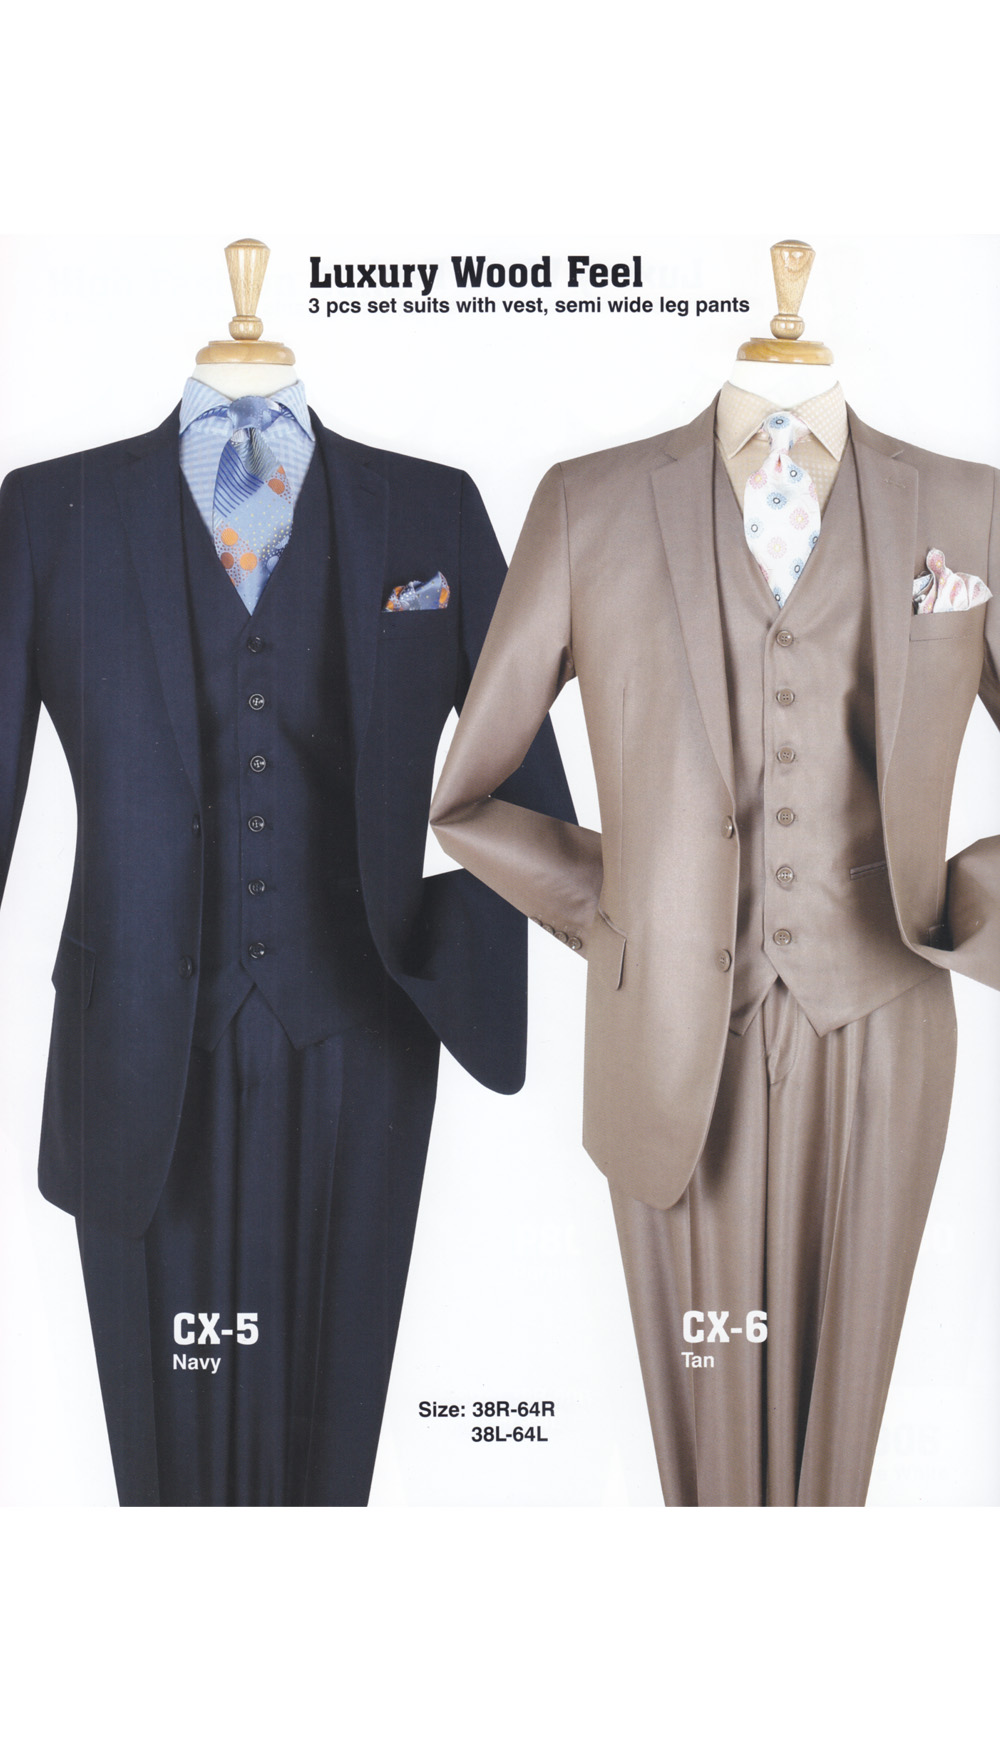 High Fashion Men Suits CX-6